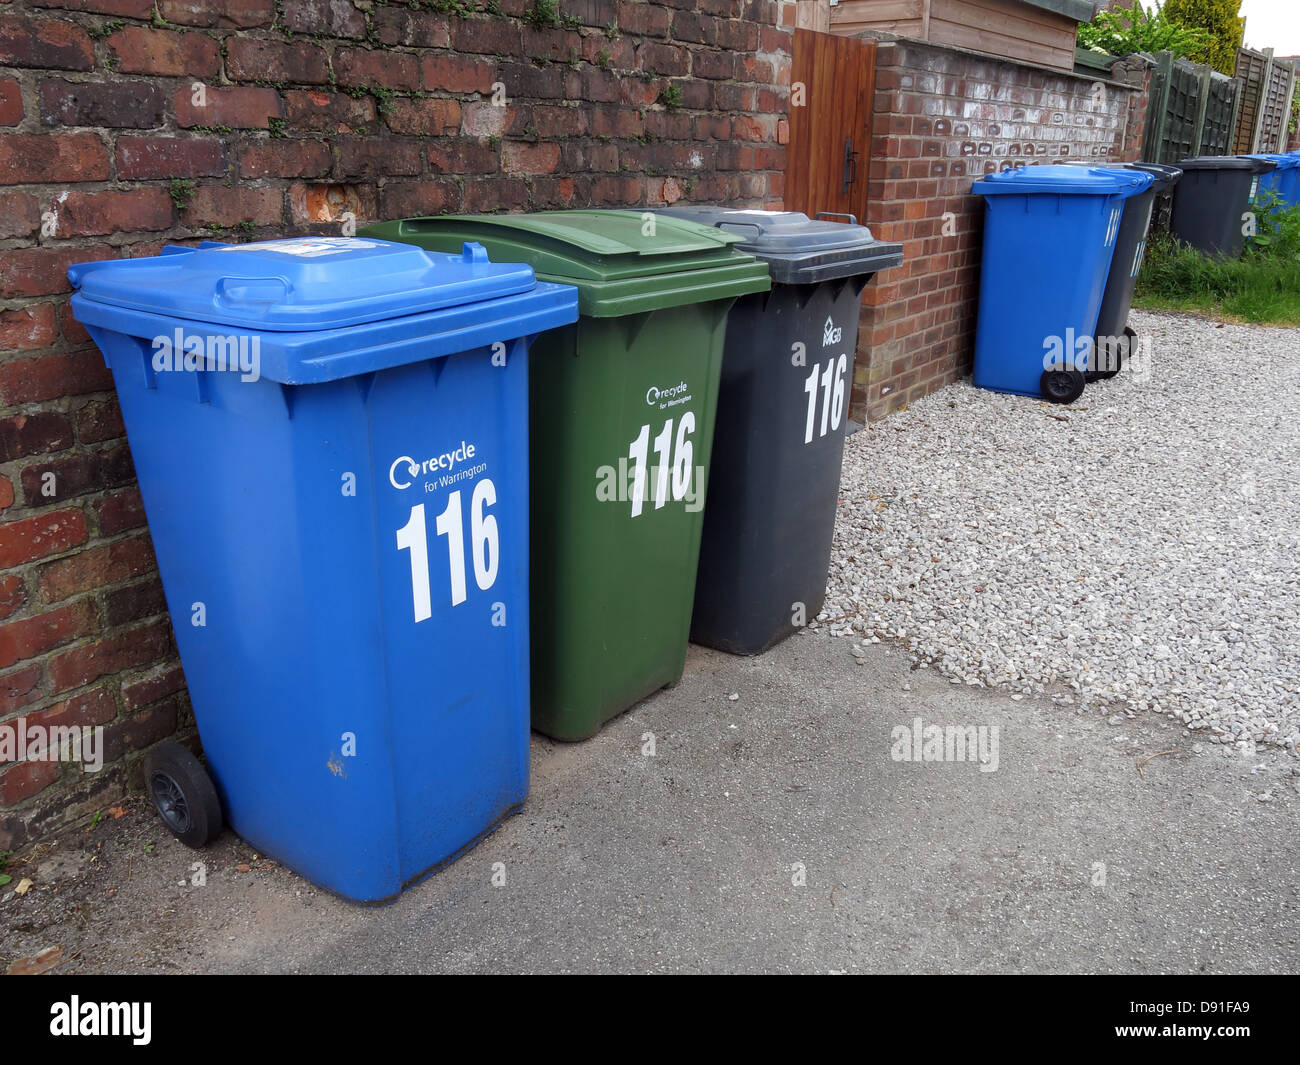 The many wheelie bins now required for domestic households in England, UK Blue for recycling, Green Garden Waste, - Stock Image